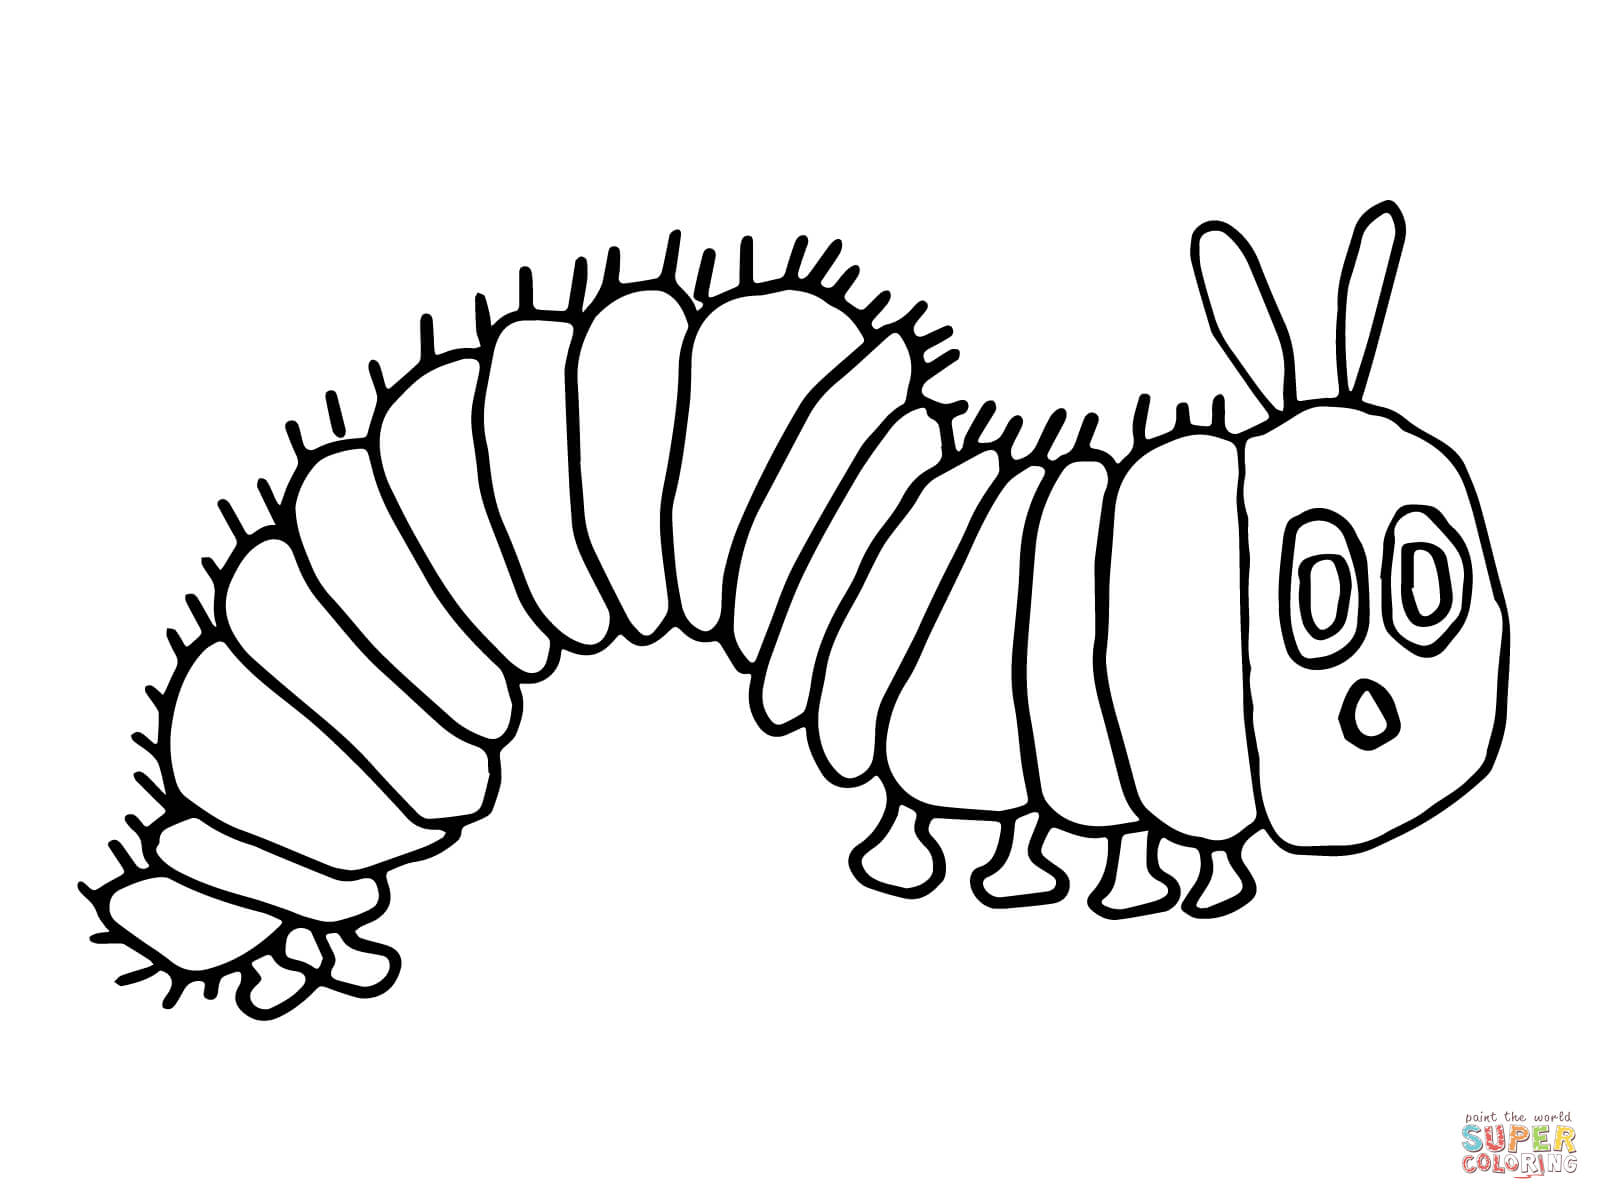 the hungry caterpillar coloring page 25 awesome picture of hungry caterpillar coloring pages the coloring caterpillar page hungry